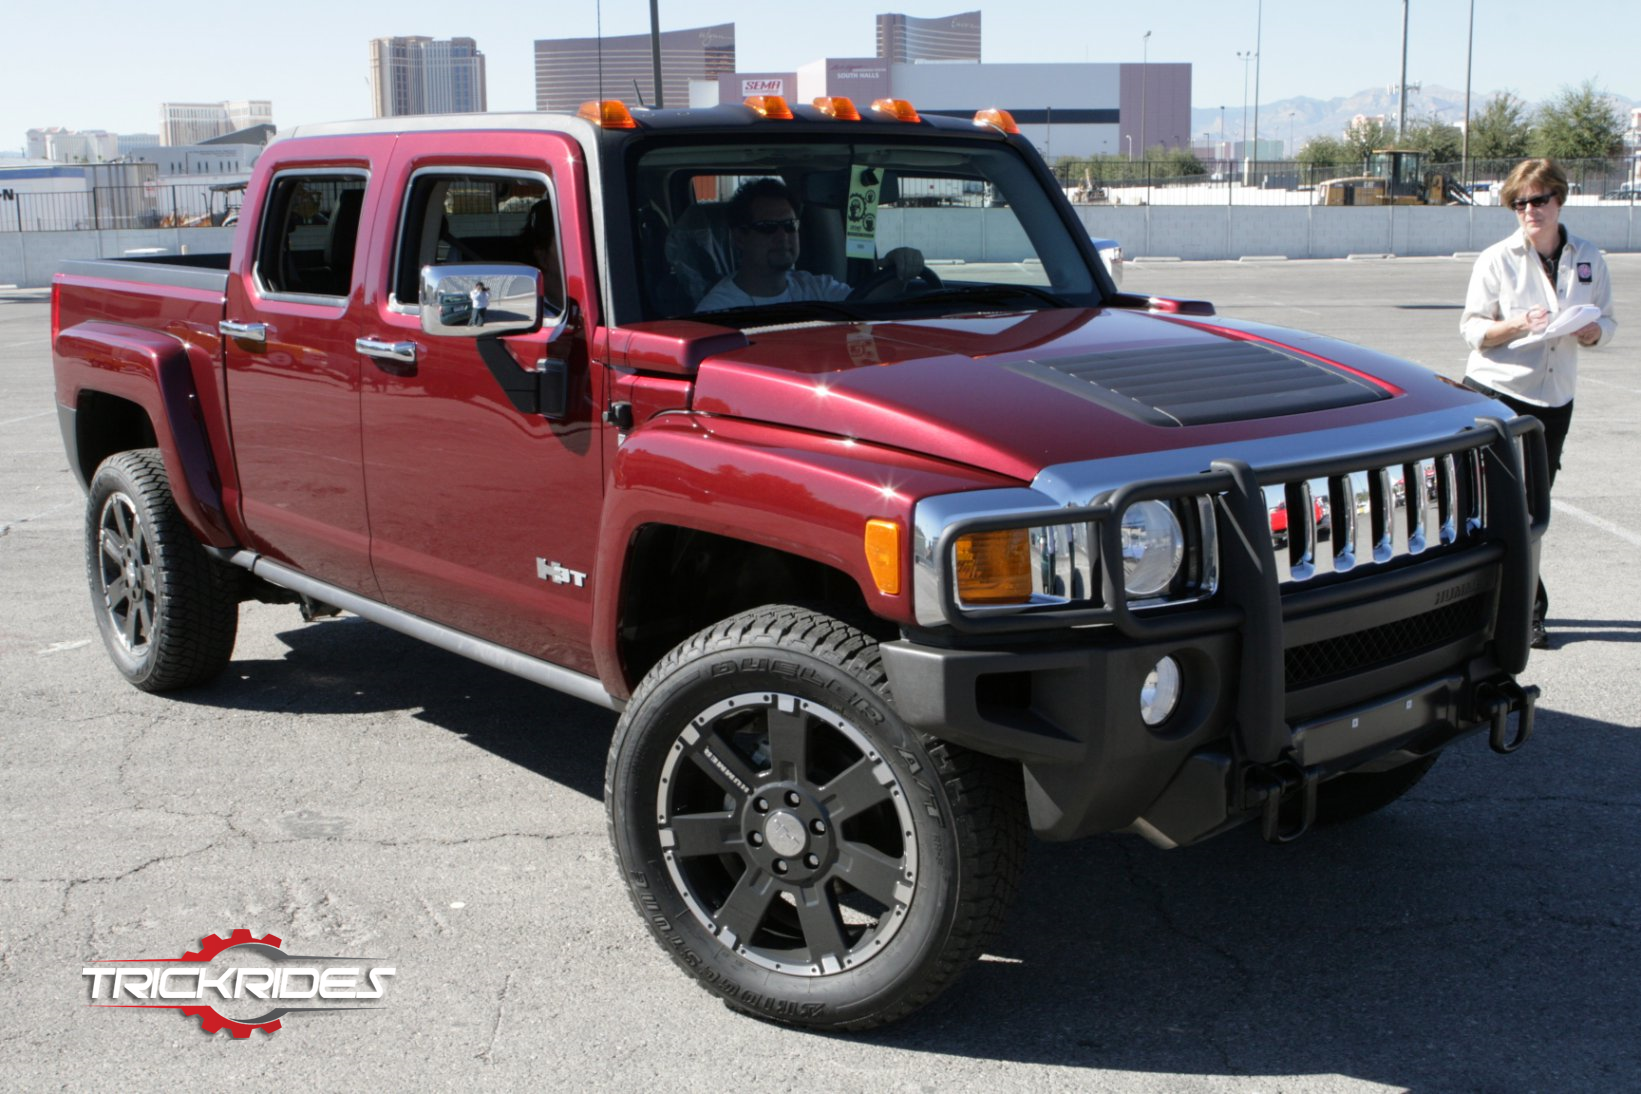 2008 Hummer H3 At Sema Trickrides Sema Customcarshow Aftermarketaccessories Trickyourride Tire Automobile Automotive V Custom Cars Vehicles Large Cars